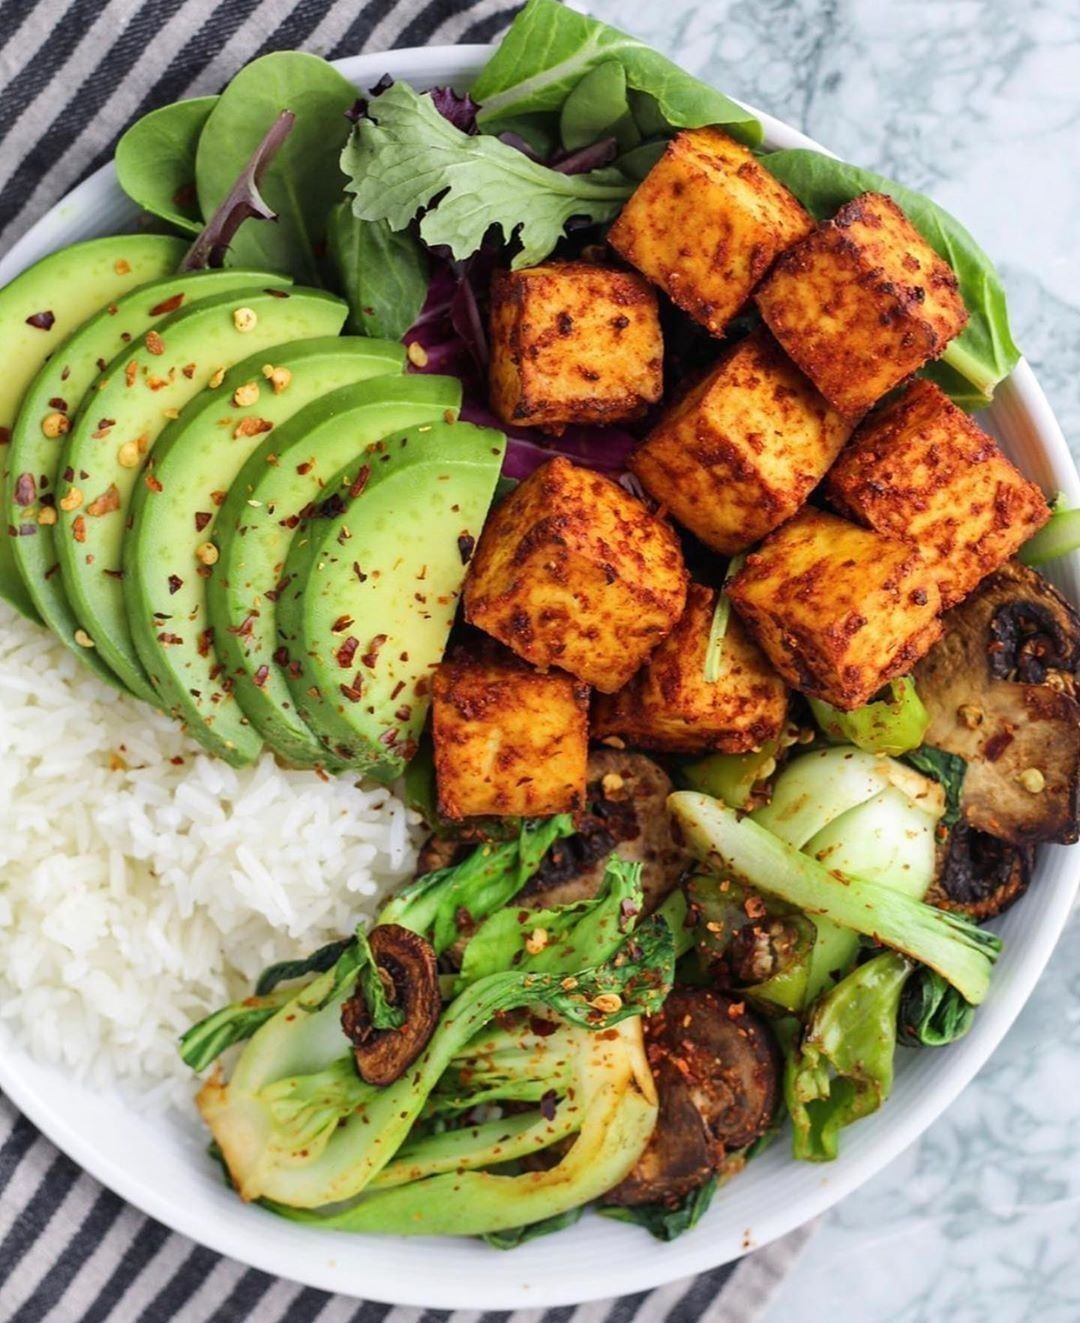 Vegan Recipes On Instagram Don T Mind Me I Ve Been Obsessed With Tofu This Week To Change Things Up I Made In 2020 Smoked Chili Whole Food Recipes Vegan Recipes